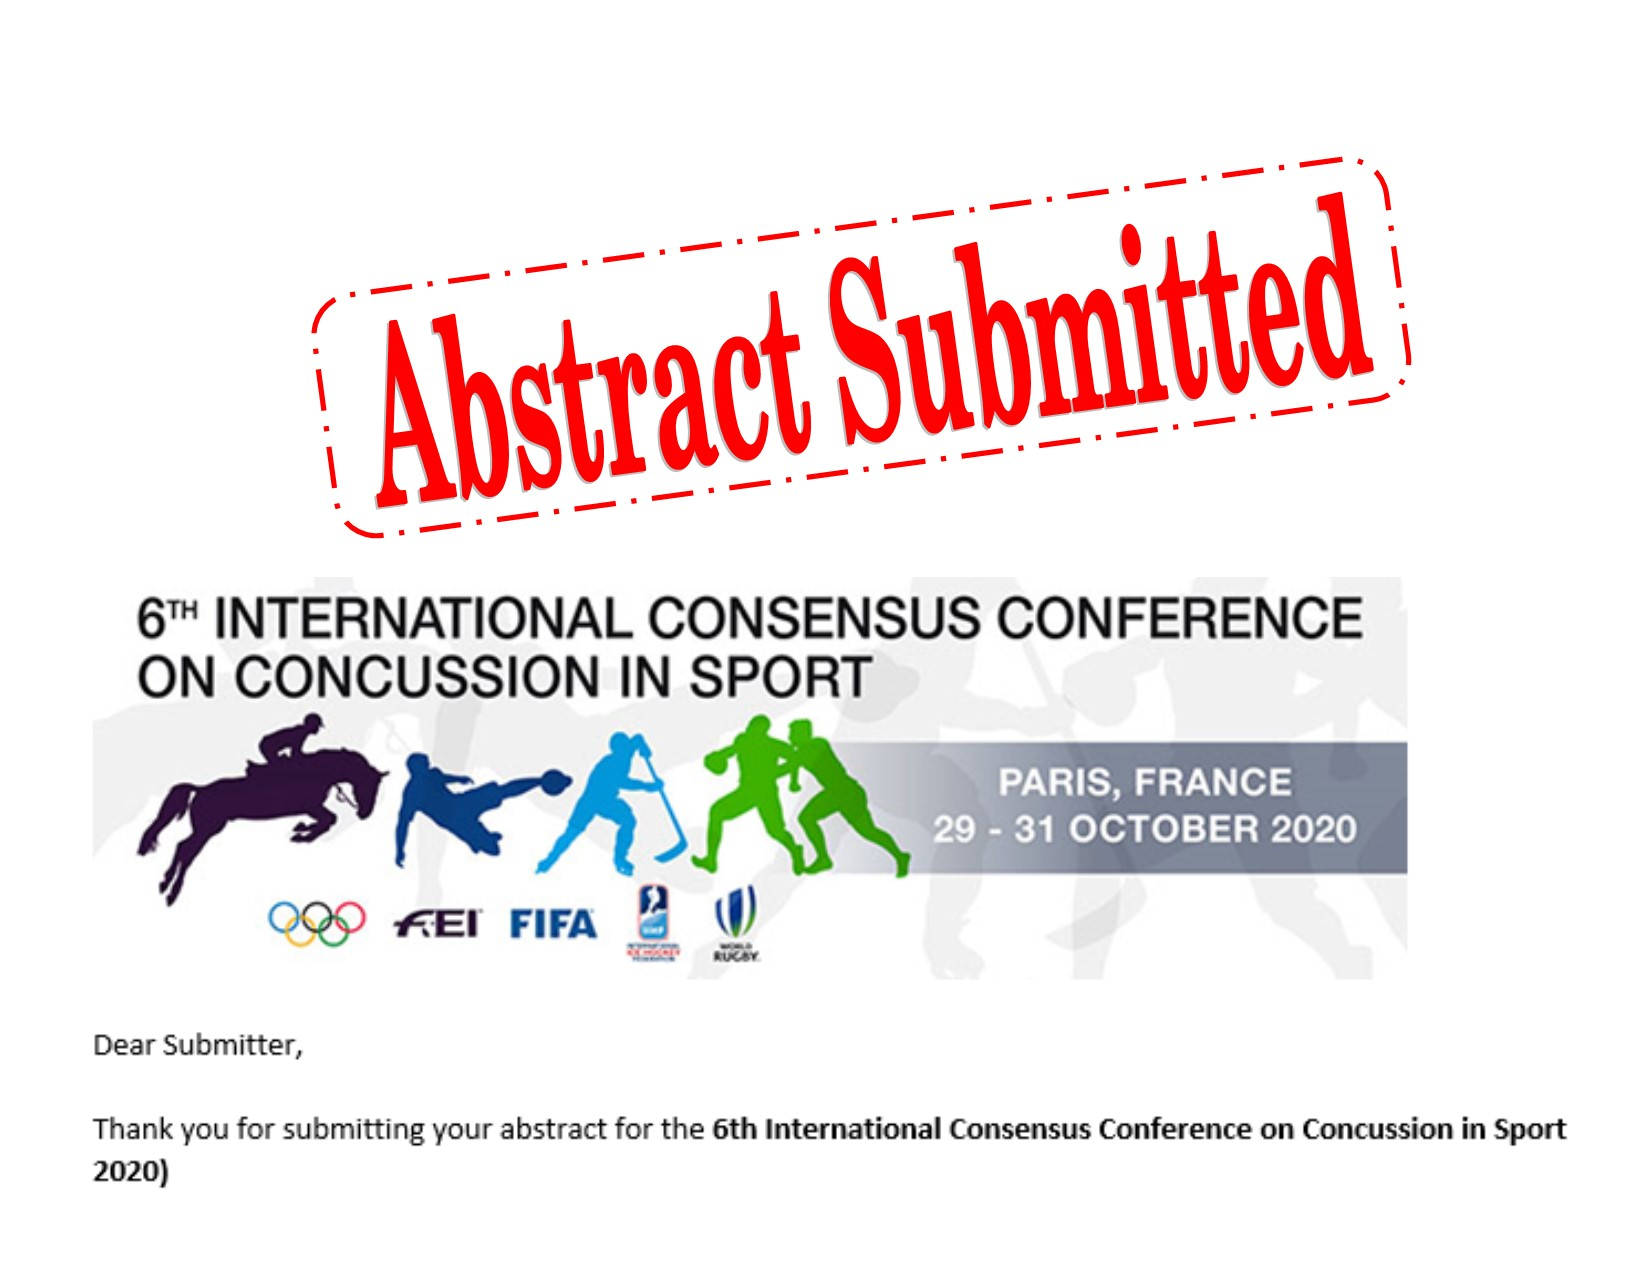 2020 International Concussion Conference Abstract submitted